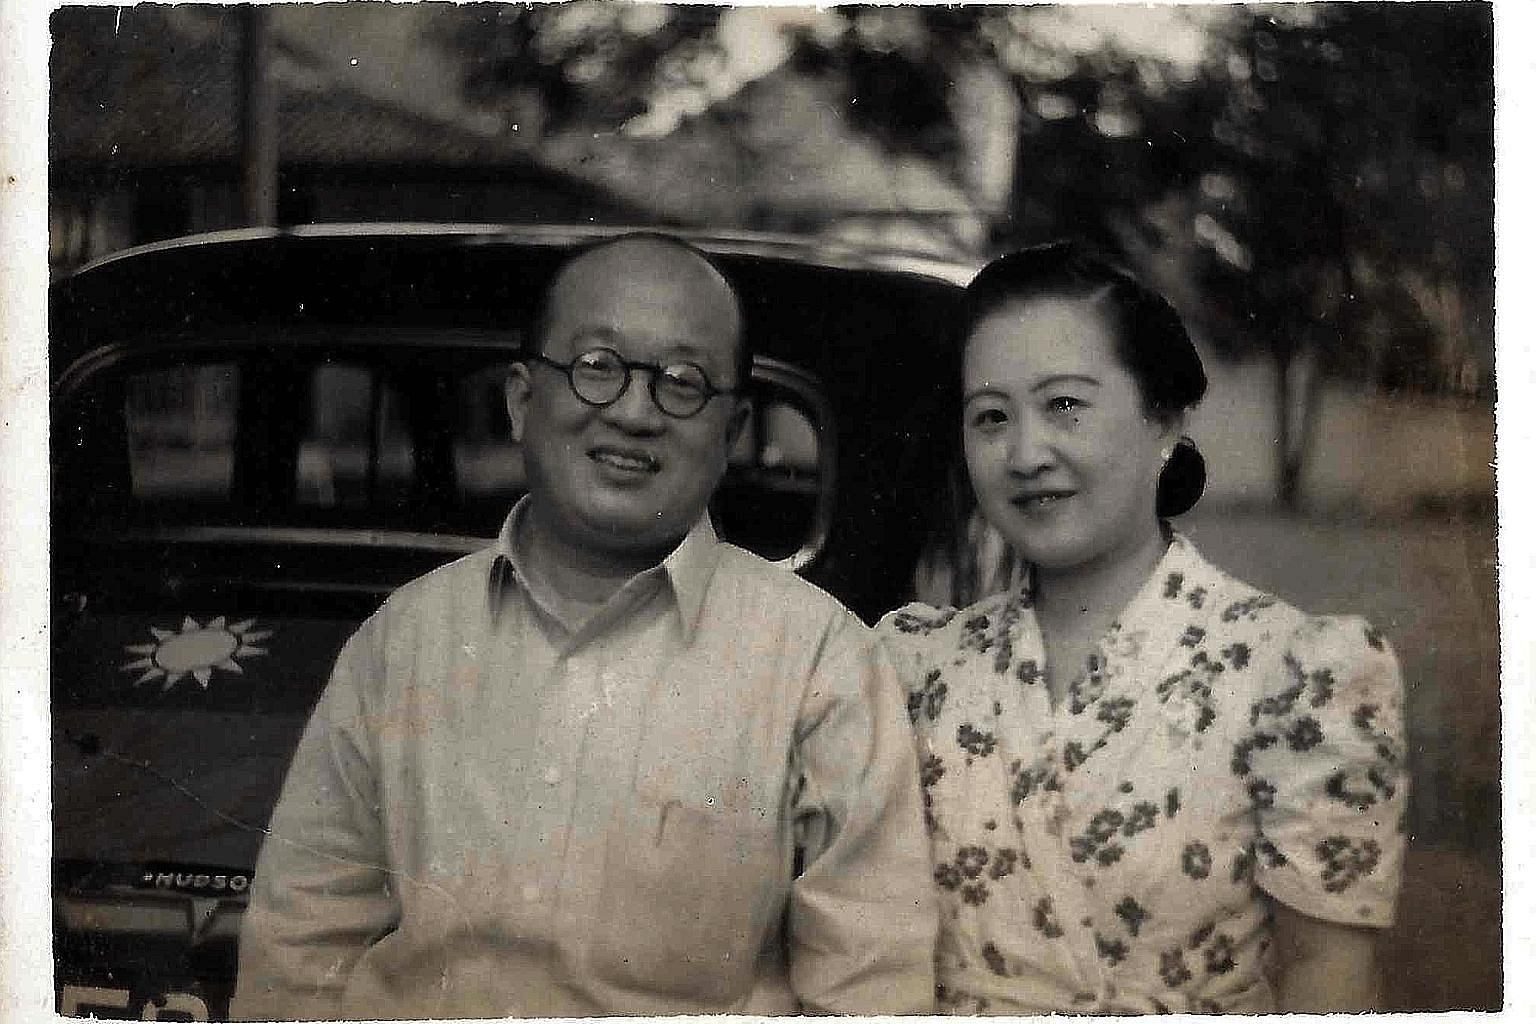 Mr New Shu Chun and his wife Hsi Cheng Hoa, Vivian Tsang's grandparents, in Jakarta, with an official Kuomintang vehicle behind them. He served as China's Vice-Consul in Yogyakarta from 1947 to 1949.